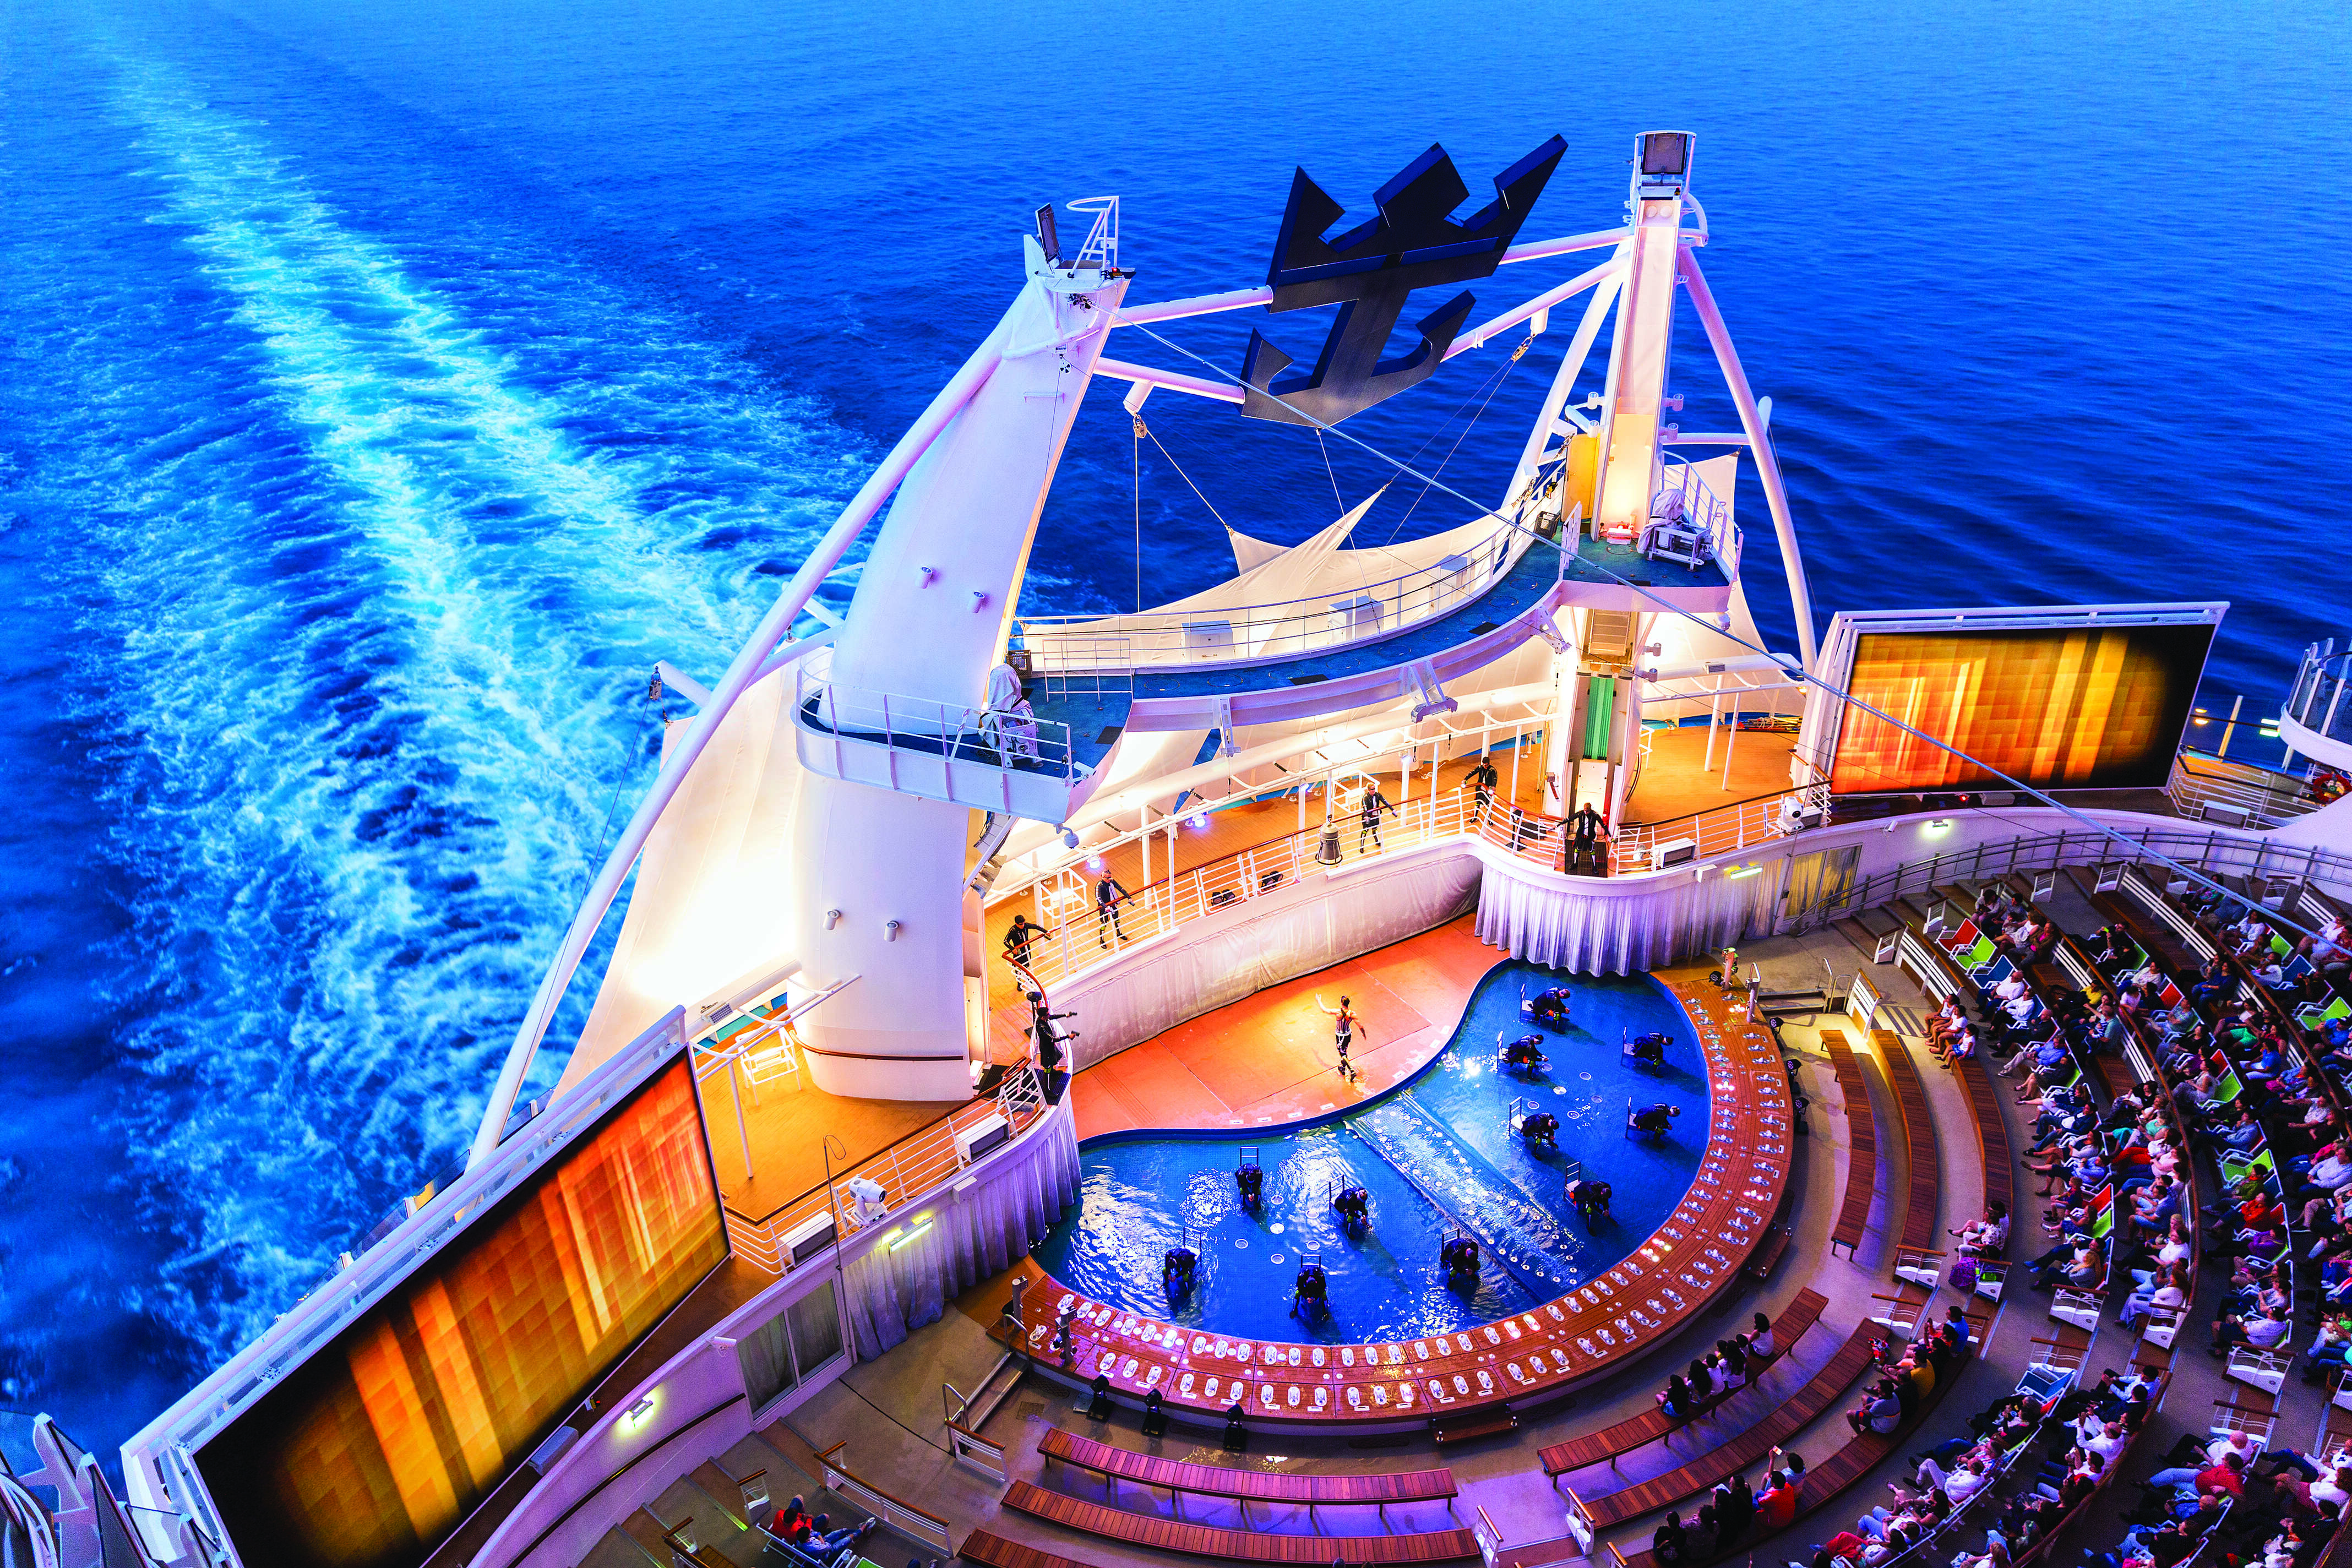 Royal Caribbean - Receive free pre-paid gratuities!